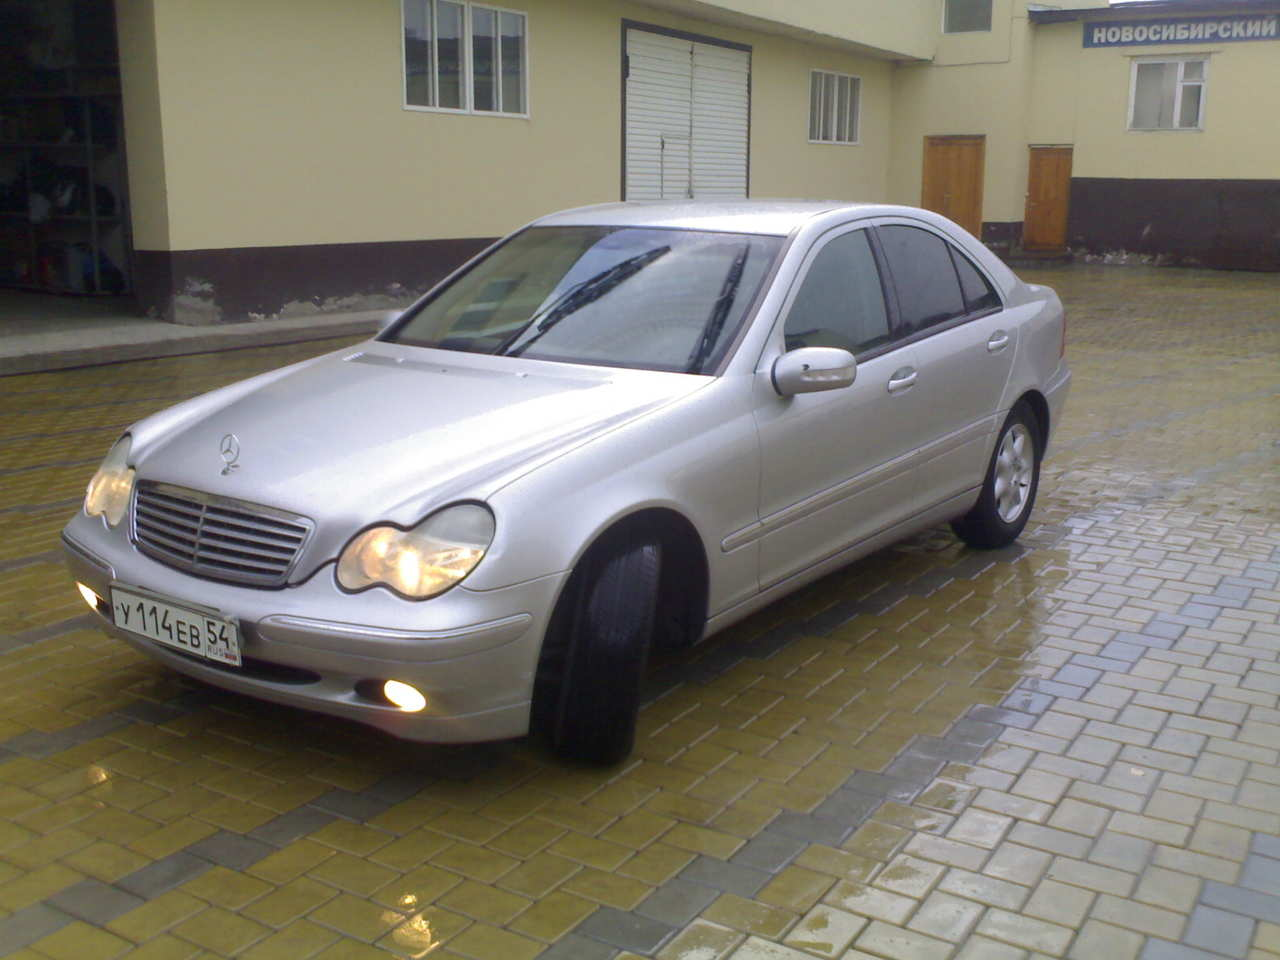 2000 mercedes benz c class pictures gasoline fr or rr automatic for sale. Black Bedroom Furniture Sets. Home Design Ideas